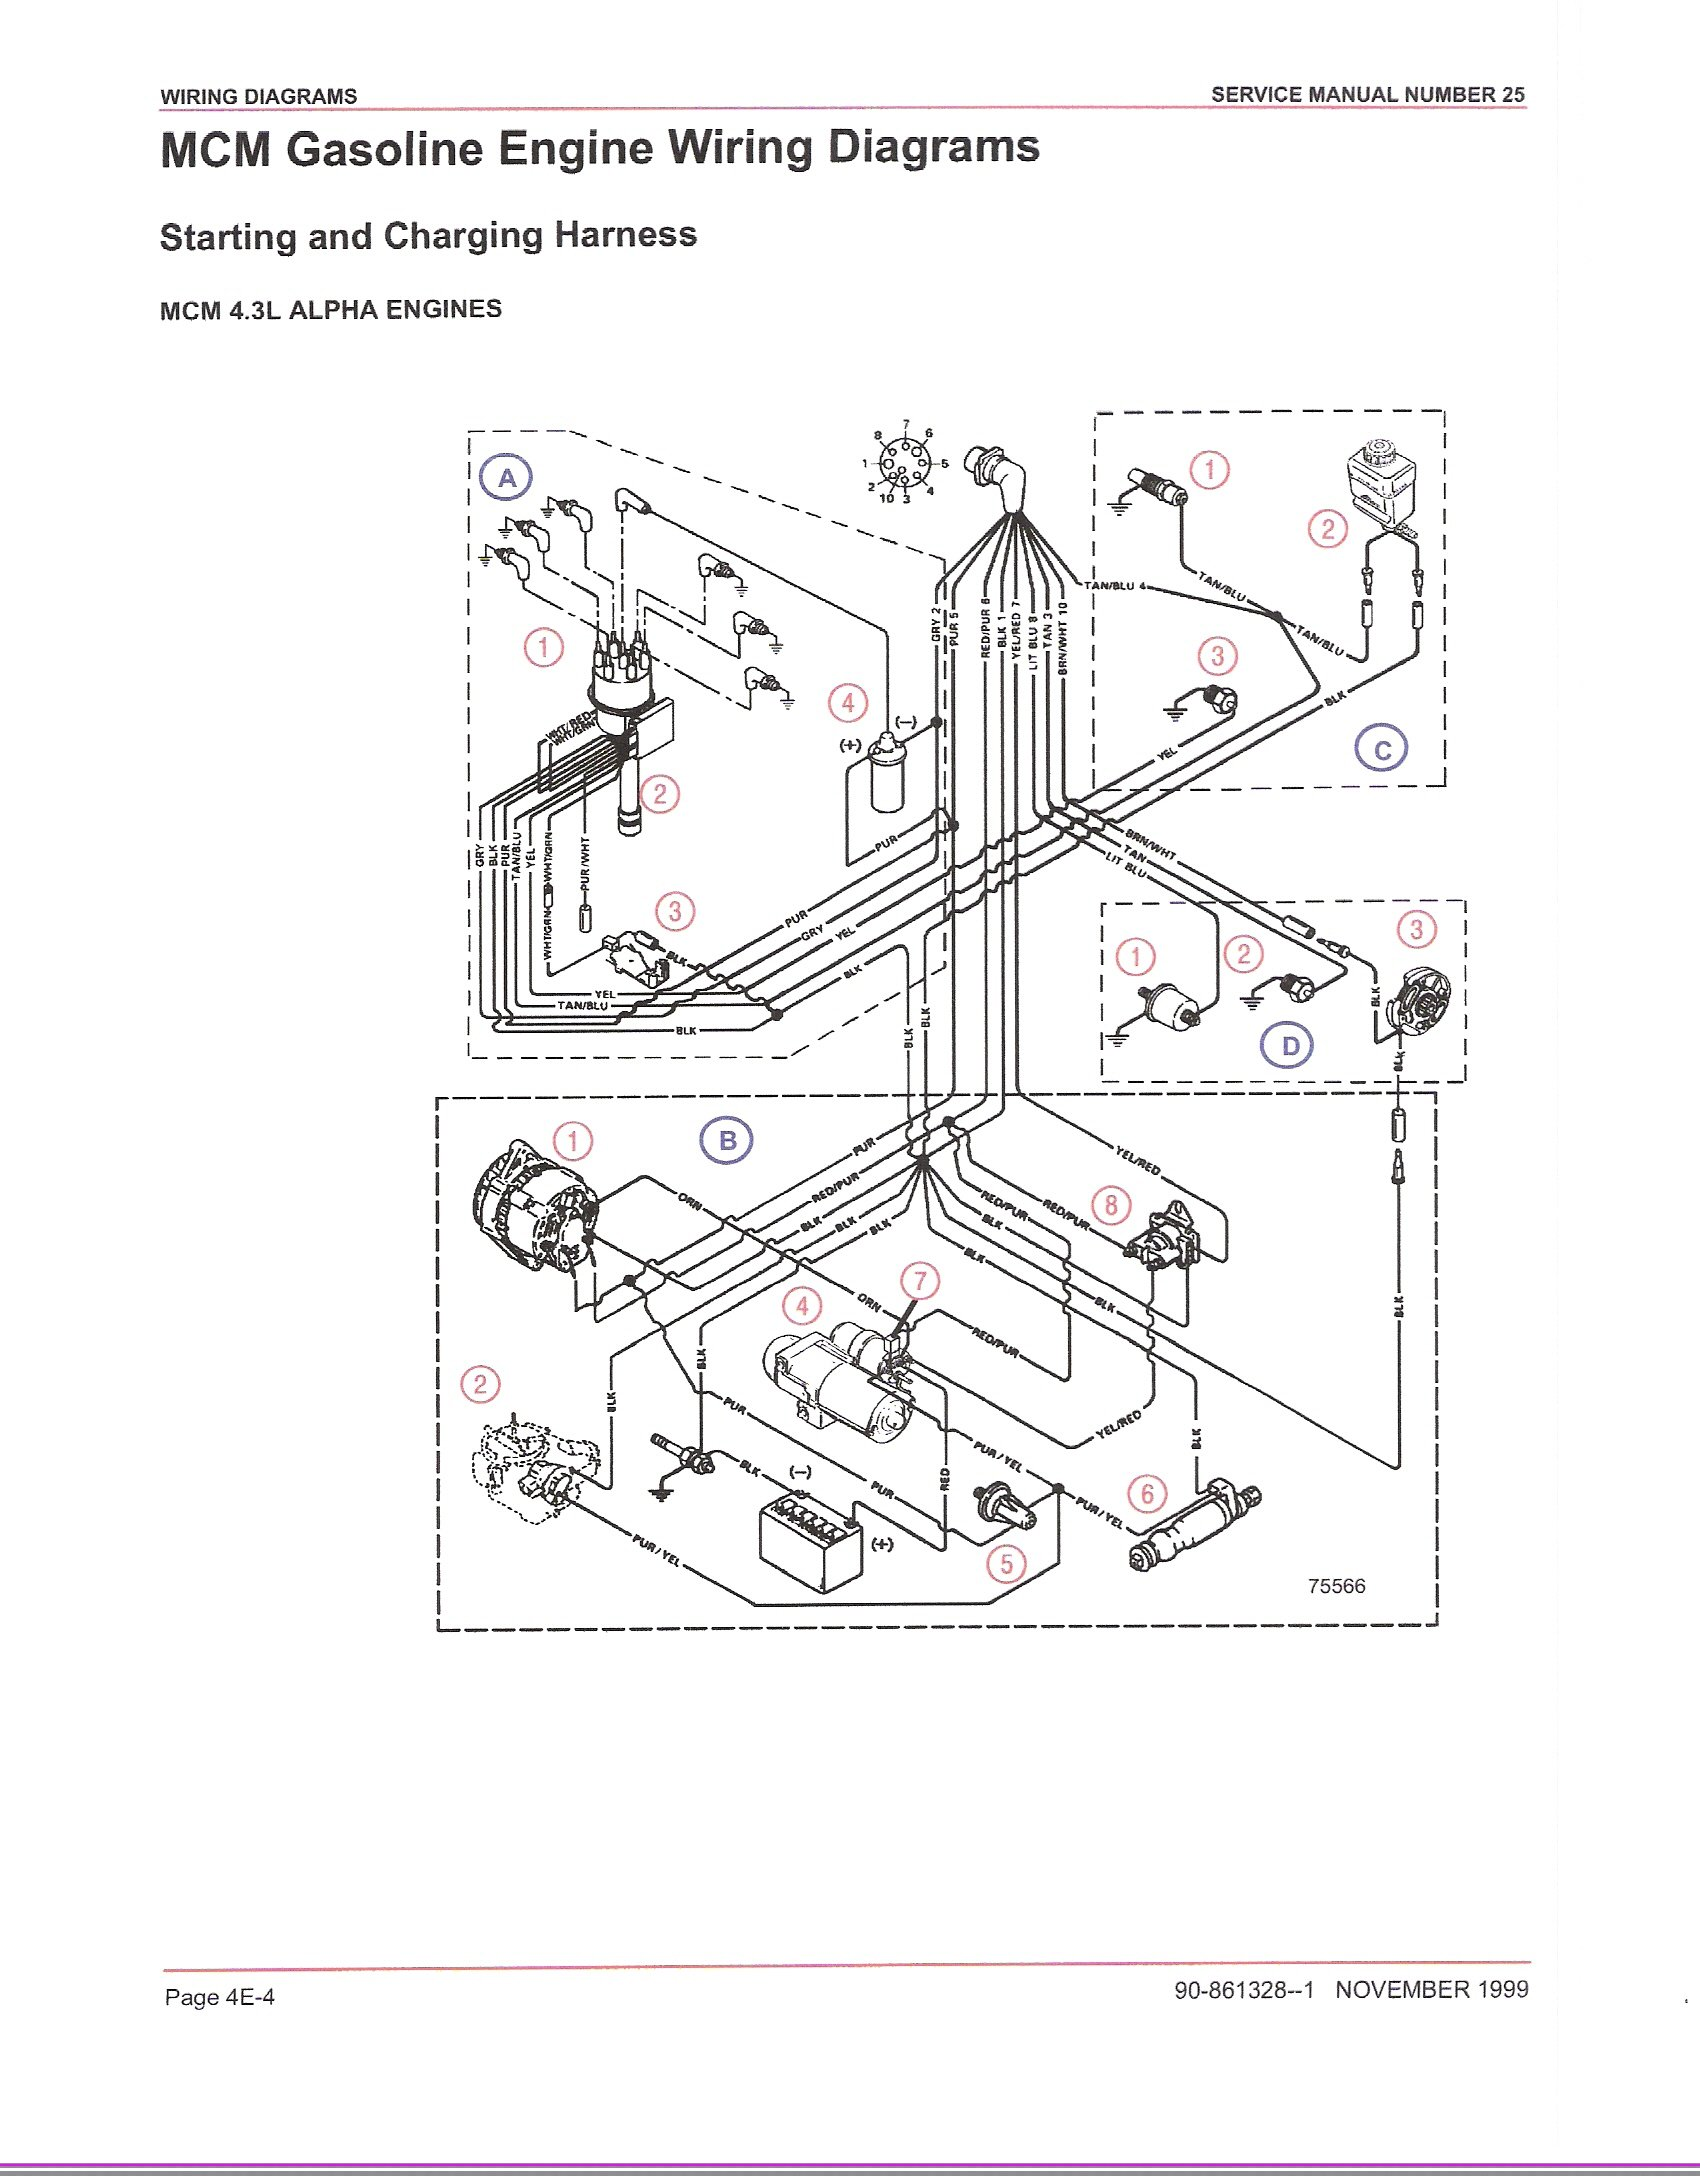 4 prong trailer wiring harness diagram mercruiser 4.3 i/o loss of power when throttling up, in either direction.had earlier issues with ... 4 cylinder mercruiser wiring harness diagram